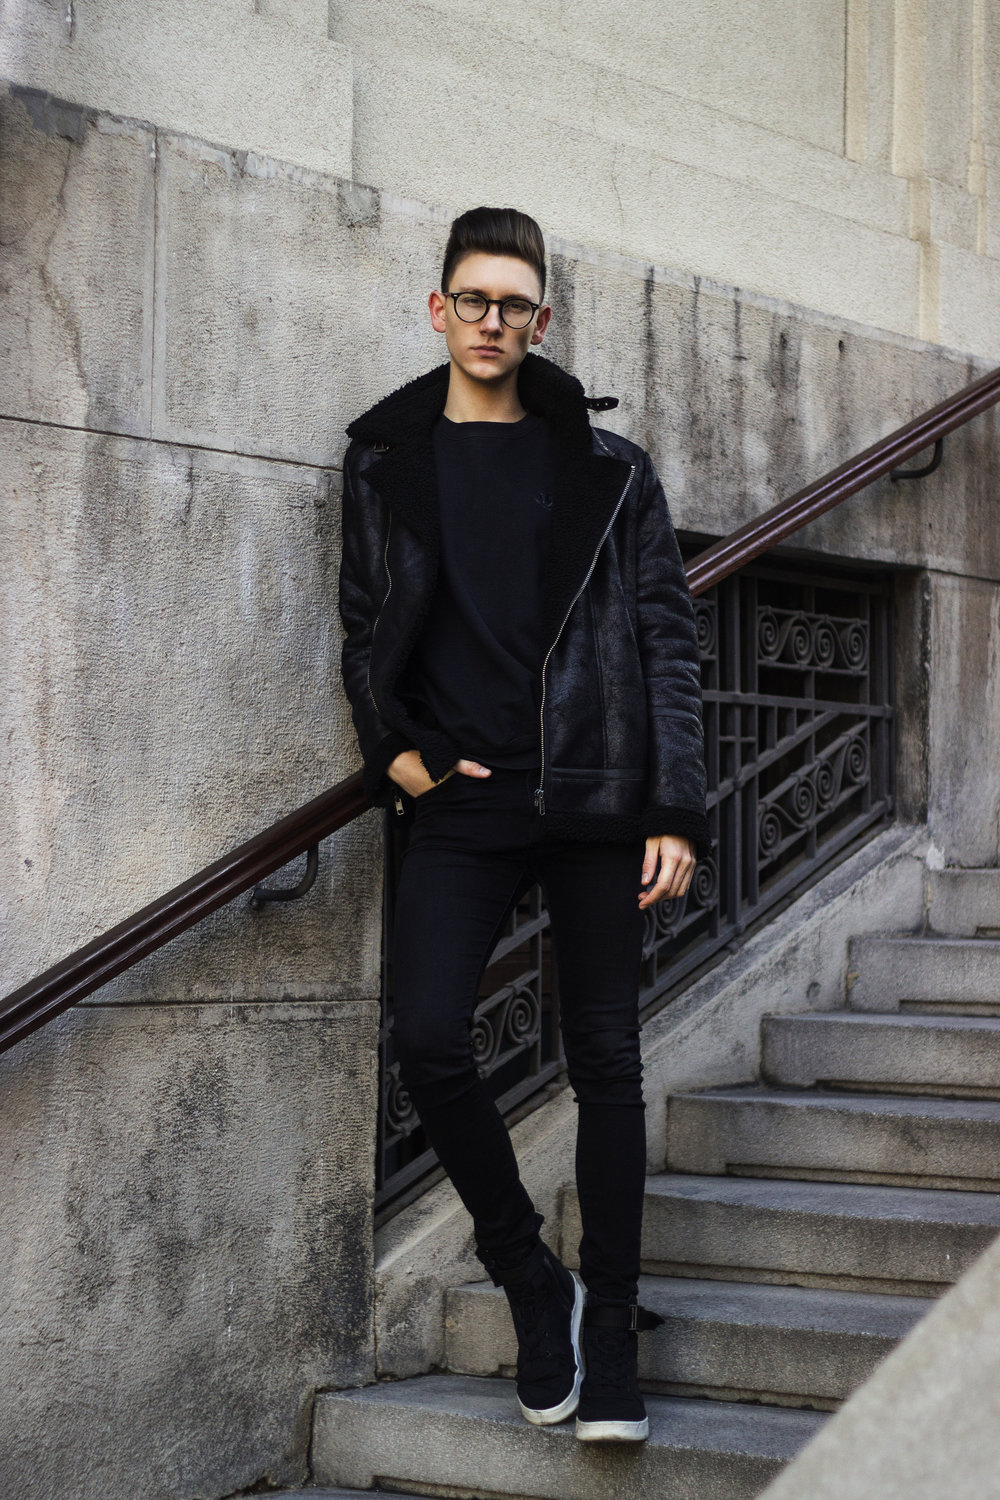 luka-lajic-expensive-reality-hm-mens-fashion-croatia-blogger (4).jpg